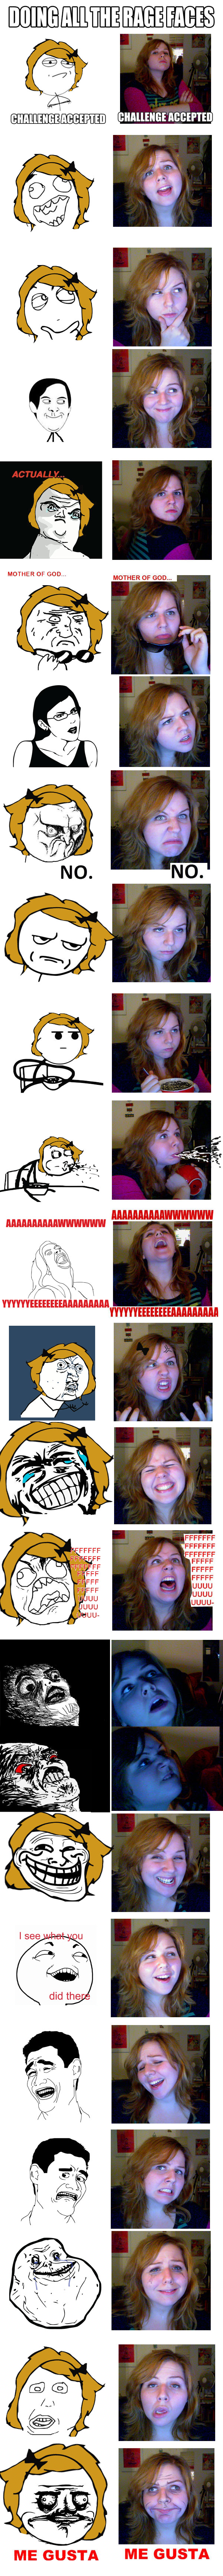 Rage Faces - me imitating by mayu